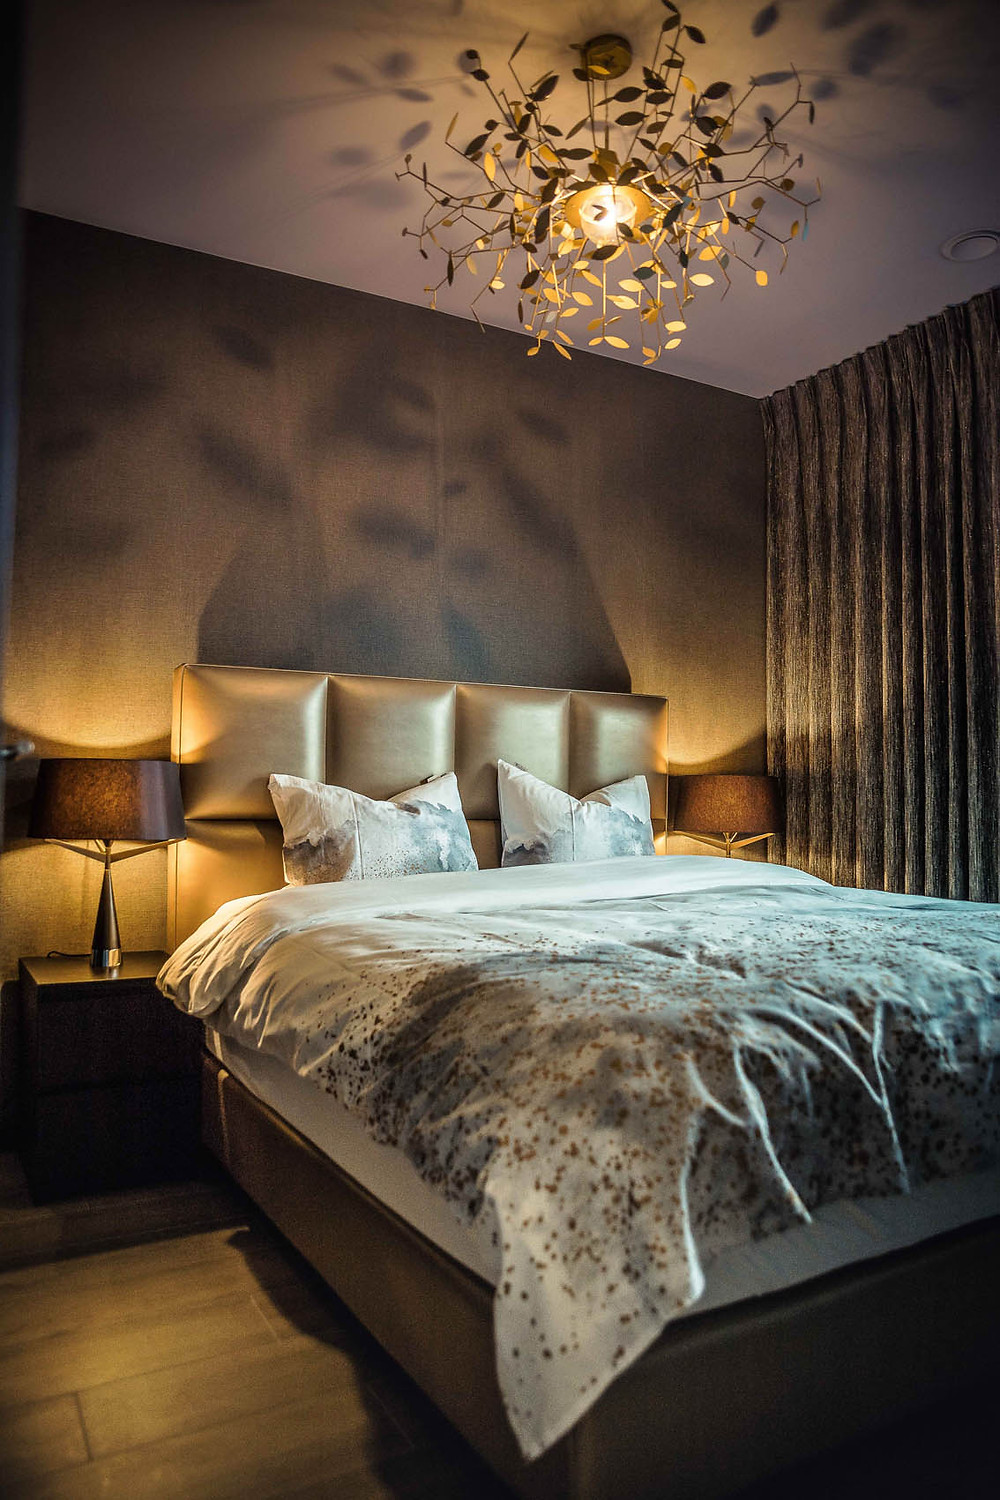 TLSC bedroom with 'Indian Summer' Chandelier by Marzia Mosconi for Axis71